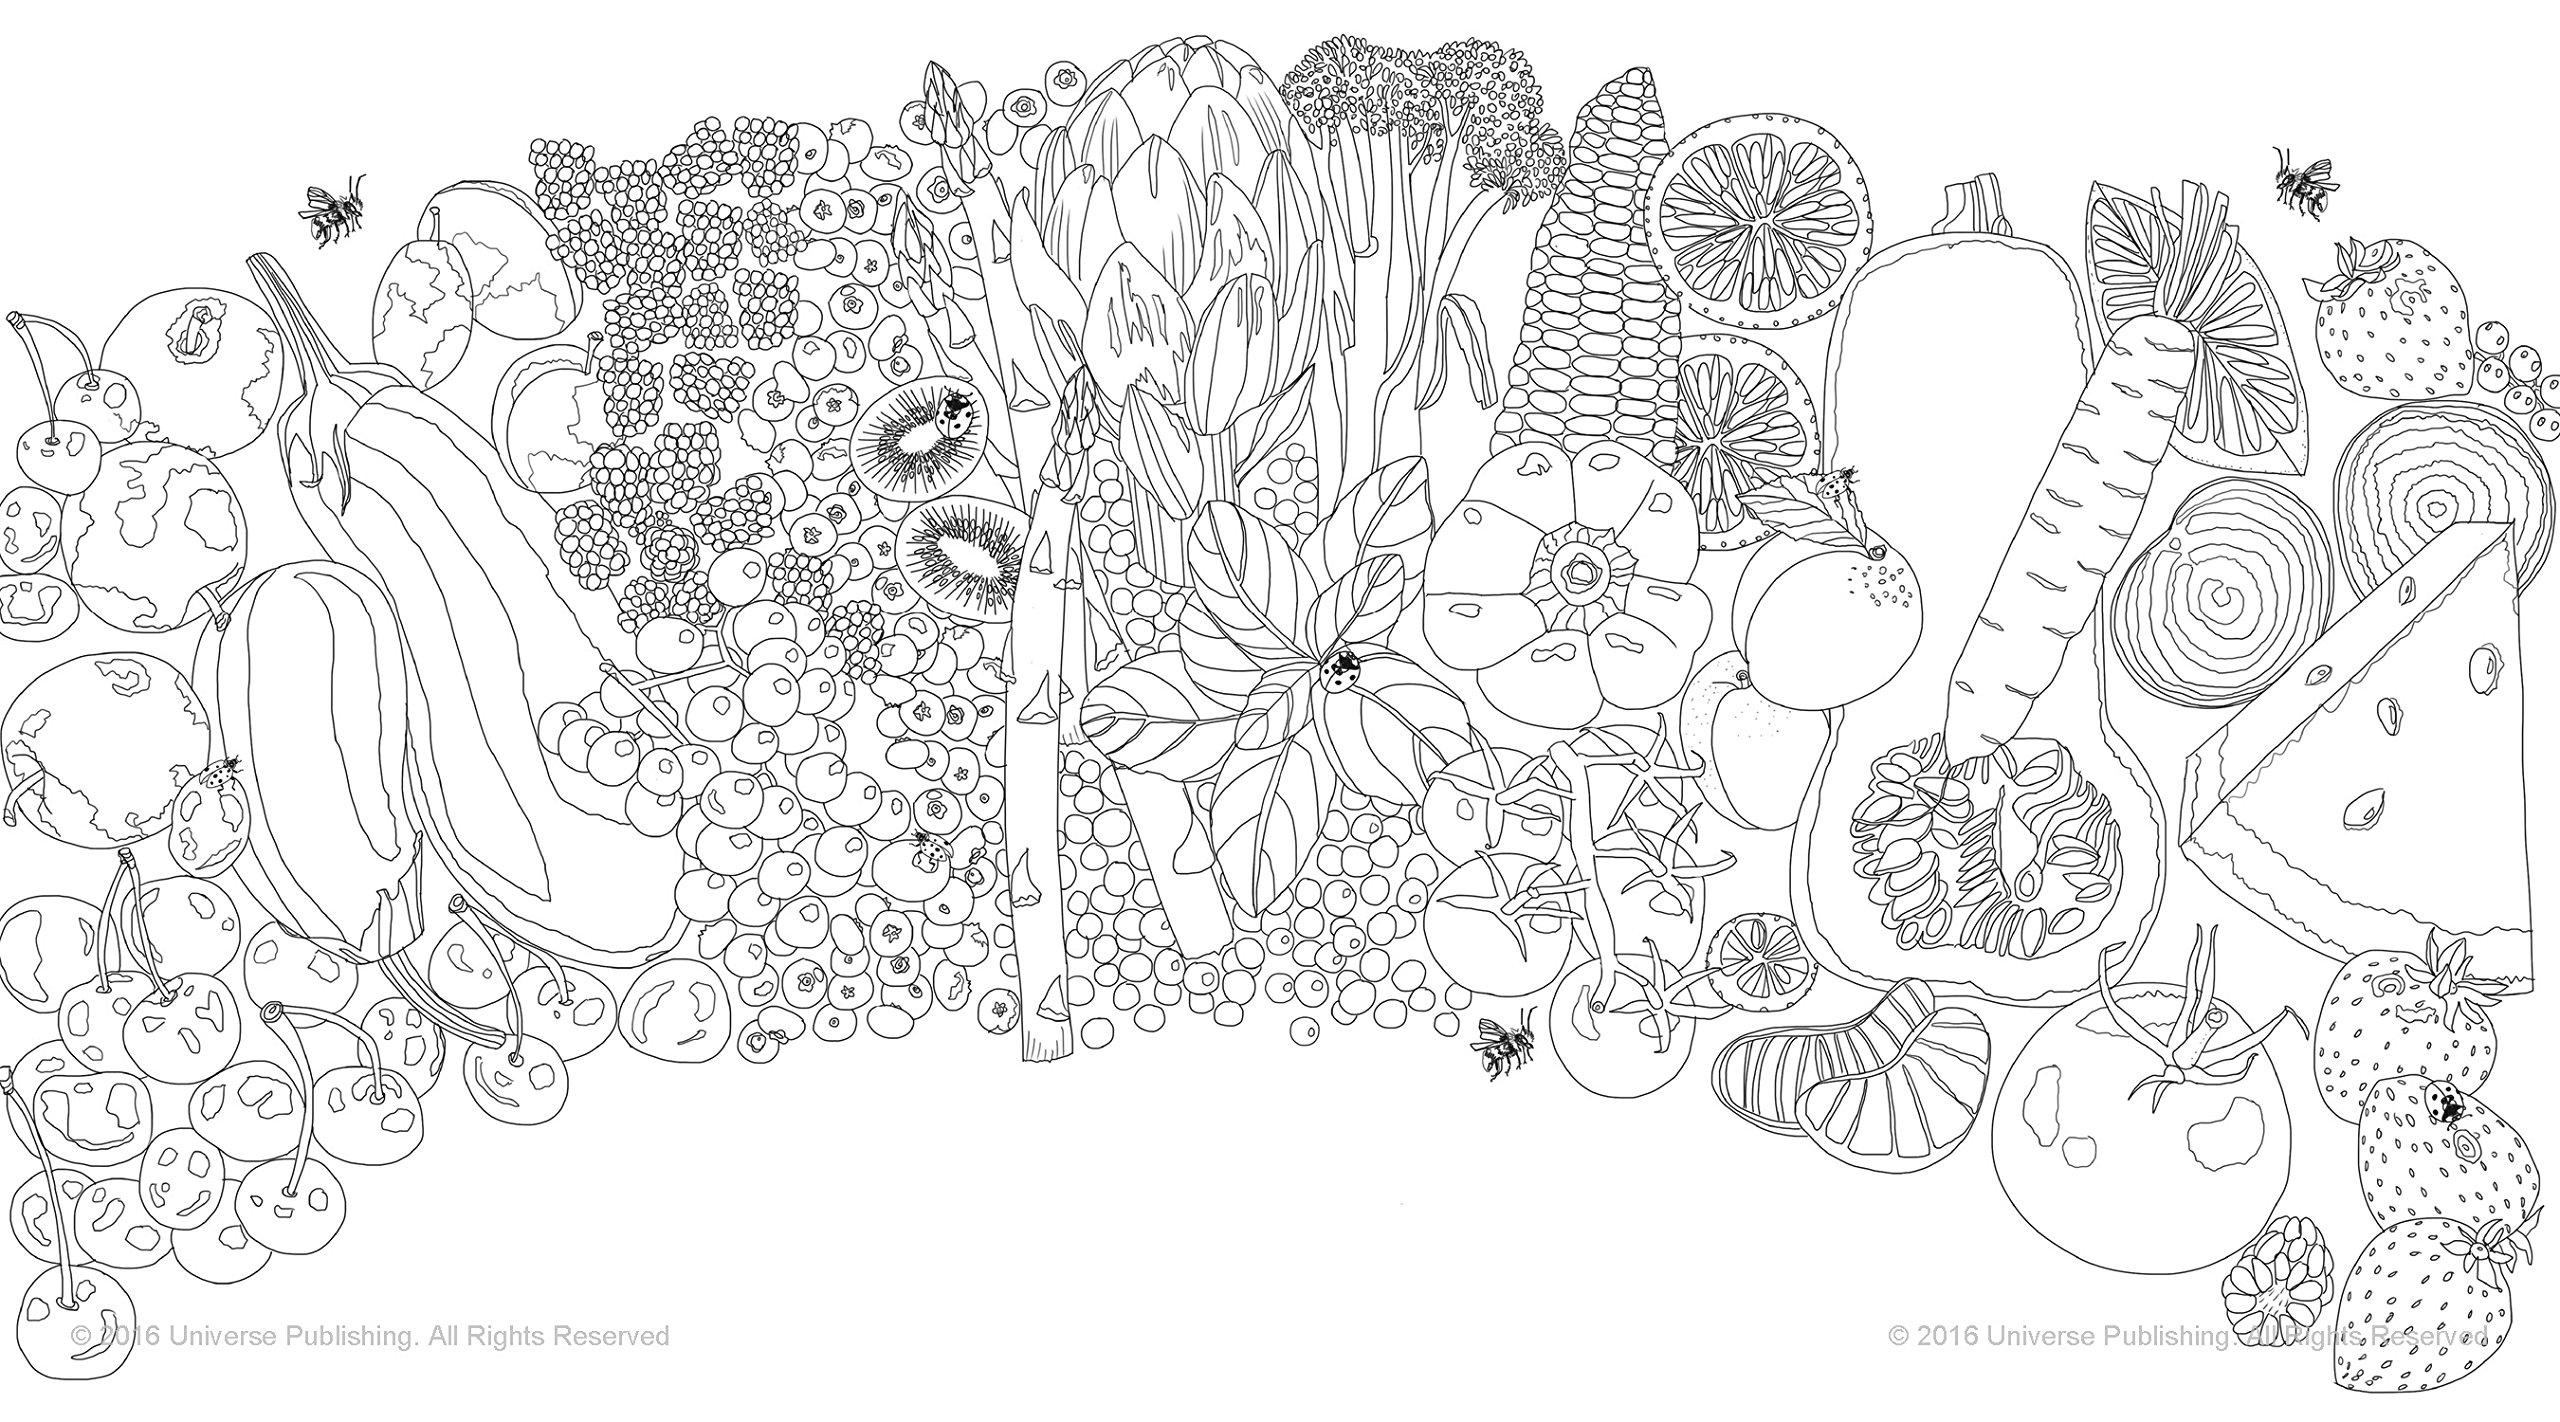 Edible Paradise A Coloring Book Of Seasonal Fruits And Vegetables Amazonca Jessie Kanelos Weiner Books